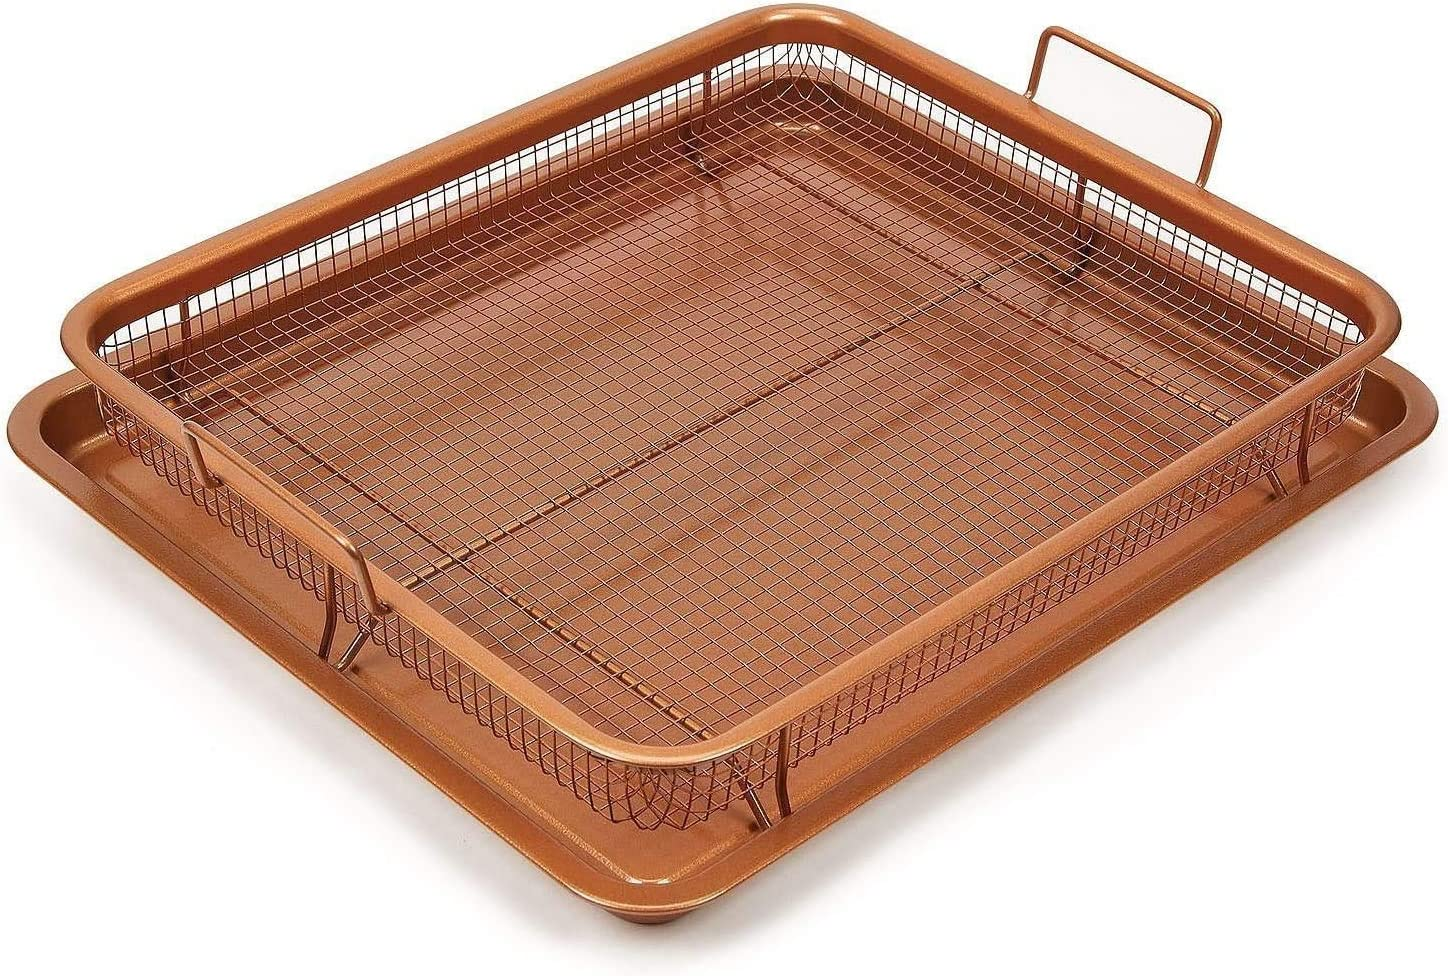 Safety and trust Copper Crisper 25% OFF Oven Tray